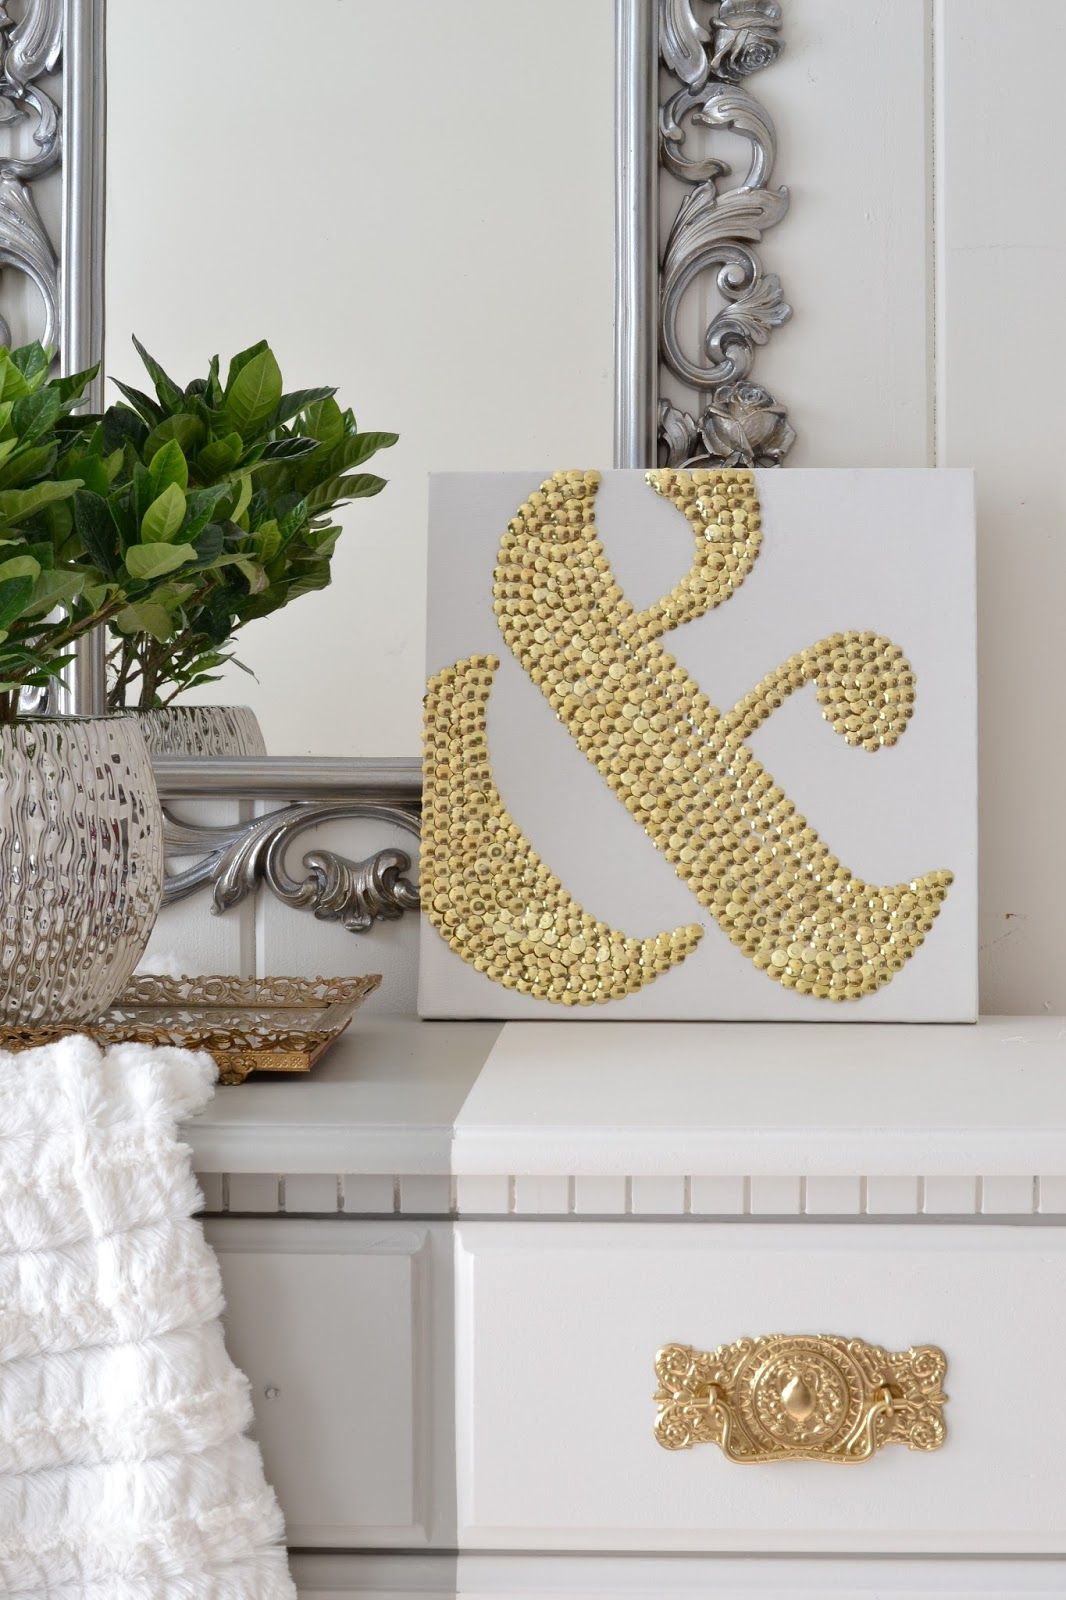 Stunning DIY Wall Art Ideas & Tutorials - For Creative Juice DIY Ampersand  Art Using ThumbtacksUse the cheap thumbtacks from the dollar store to make  this ...